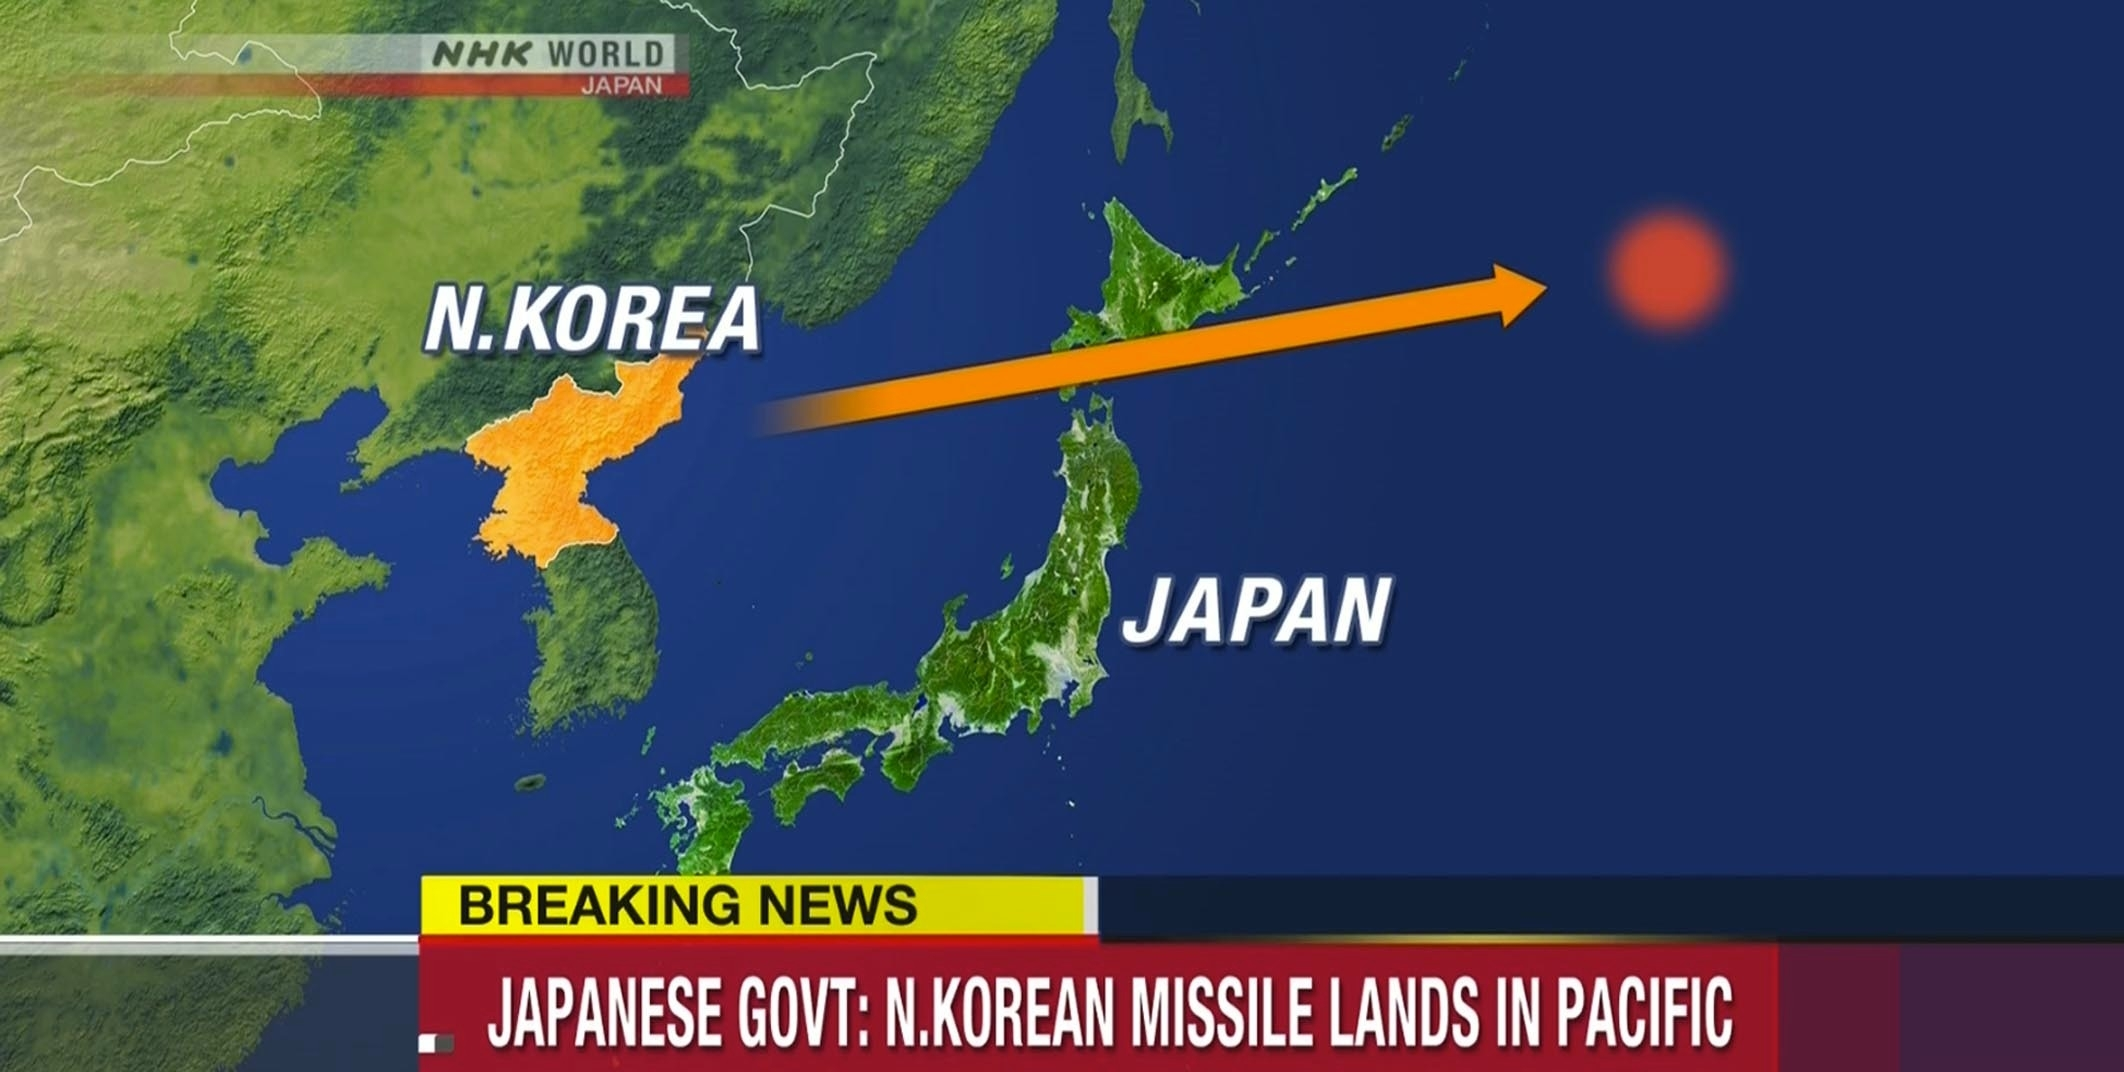 Local TV images after North Korea has fired a missile that flew over northern Japan before crashing into the sea, the Japanese government says. No effort was made by the Japanese to shoot down the missile, which was launched early in the morning local time, triggering safety warnings.